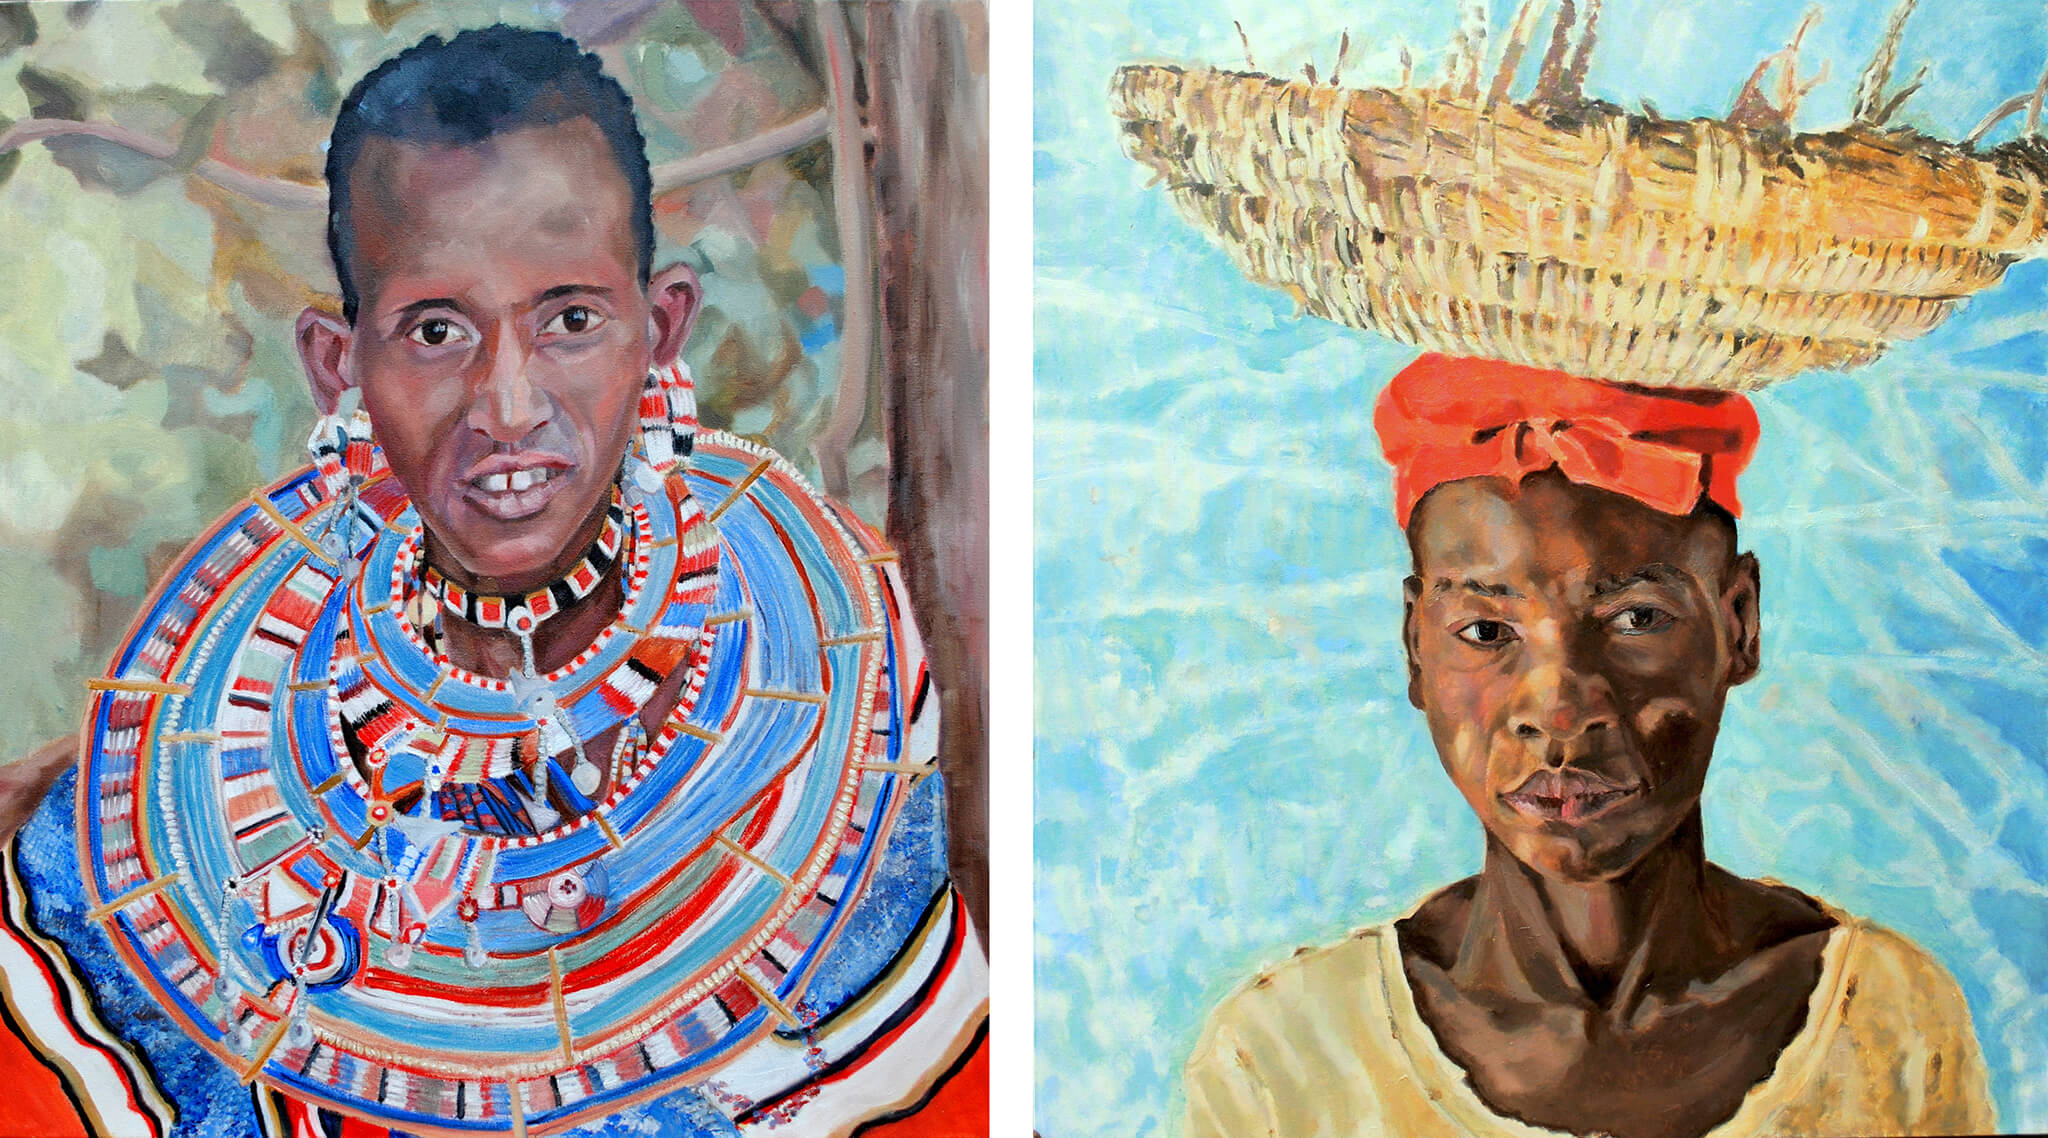 Maasai woman and The Hod Carrier oil on canvas portraits by Stella Tooth